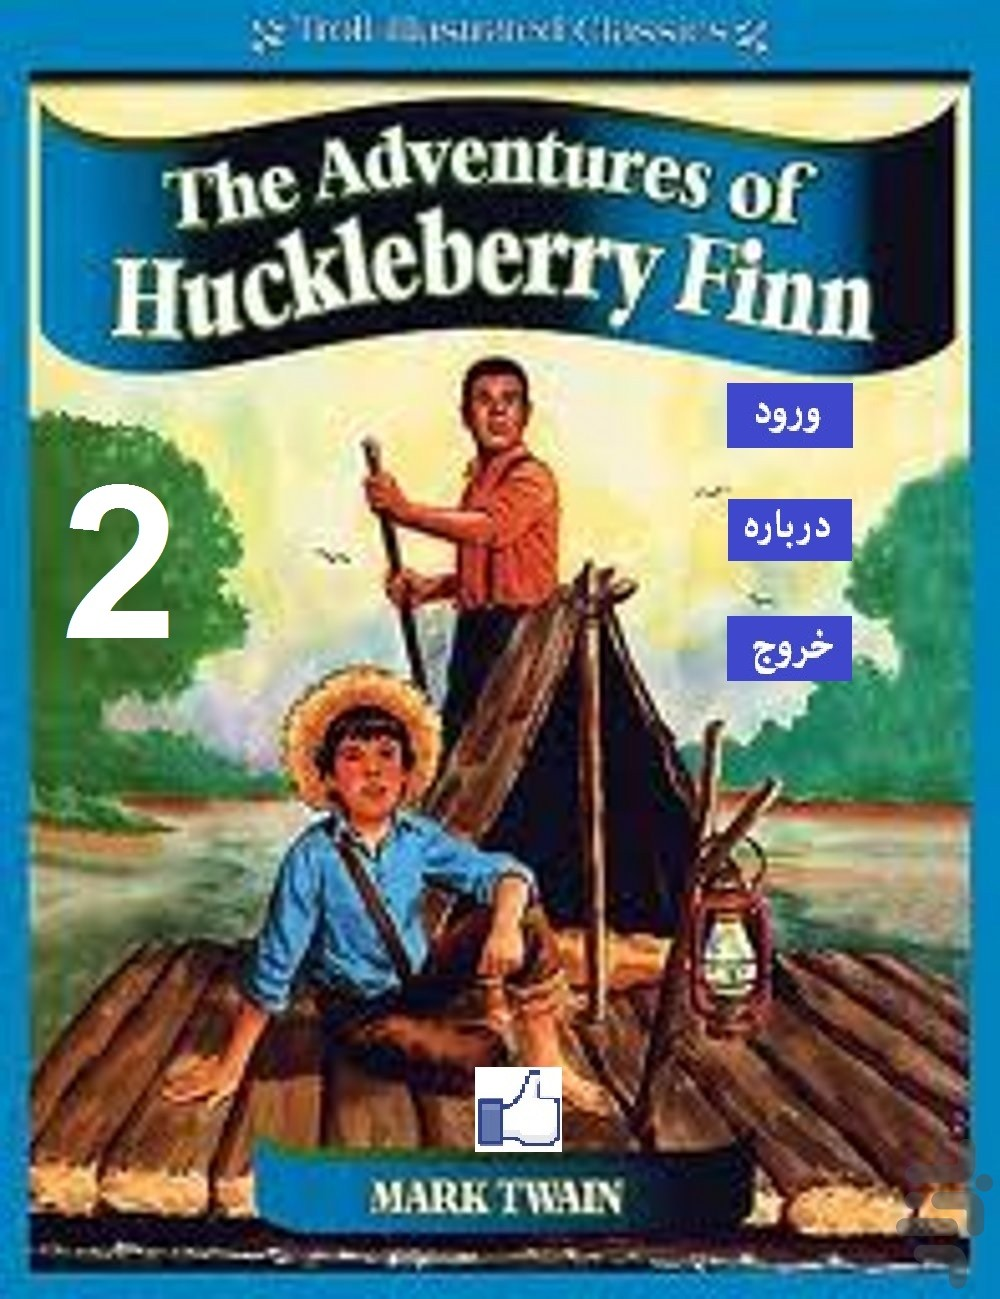 from civil war through the modern age in the adventures of huckleberry finn by mark twain the road n Transcript of cultural context in the adventures of (after civil war) name originated from mark twain's cultural context in the adventures of huckleberry finn.